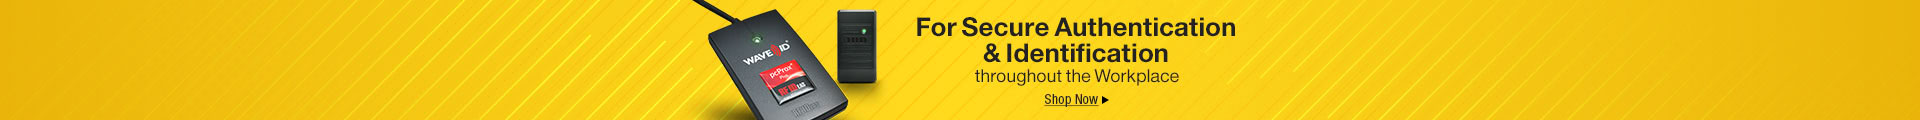 For secure Authentication & Identification